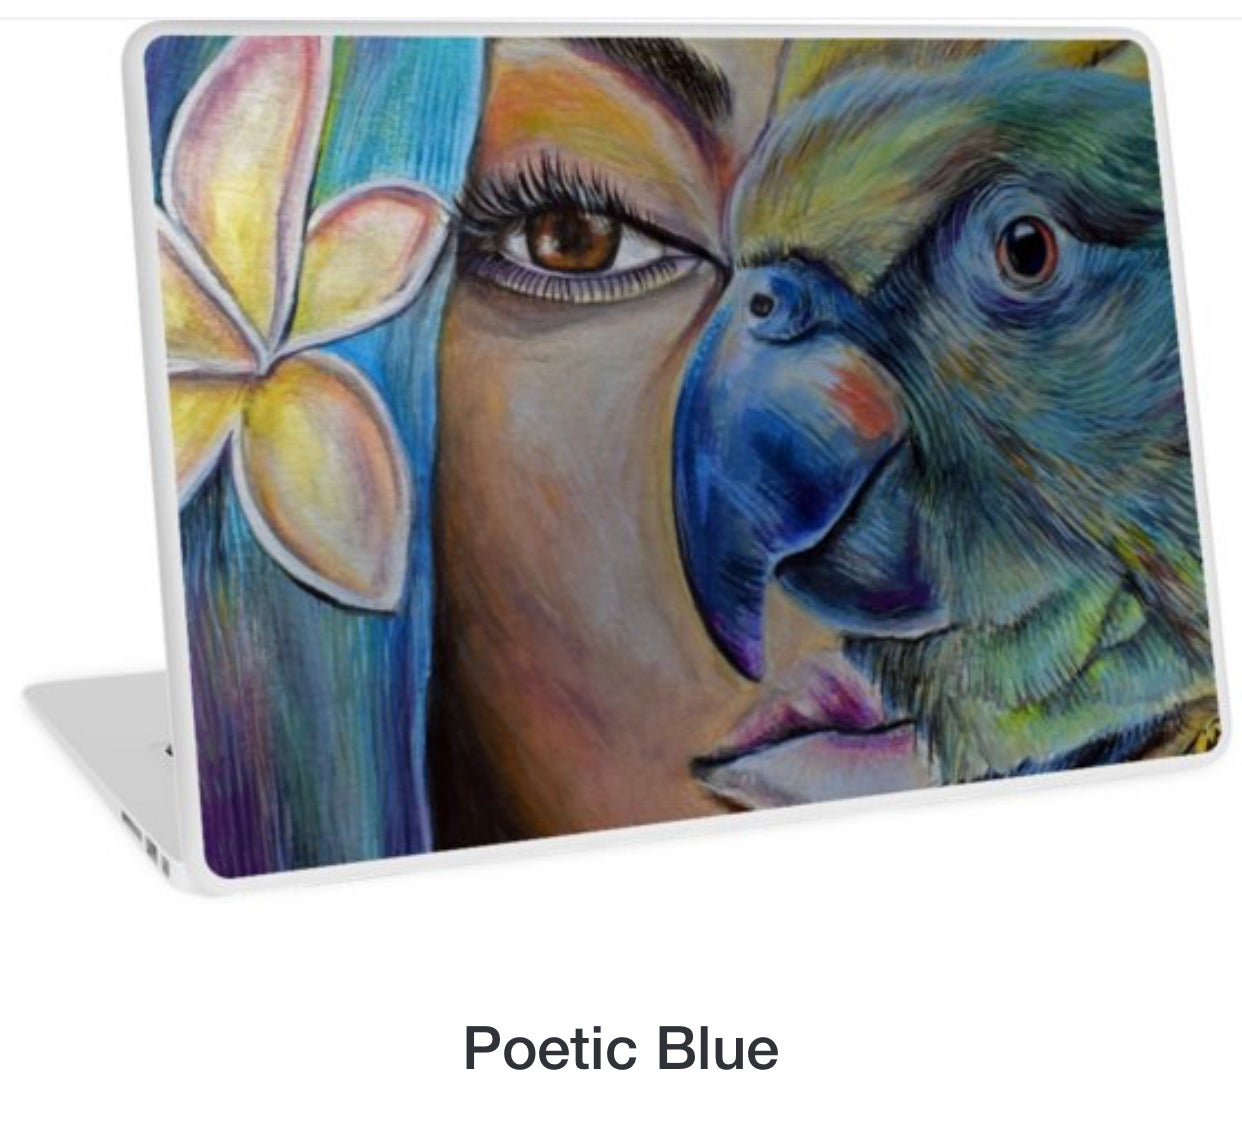 Image of Poetic Blue